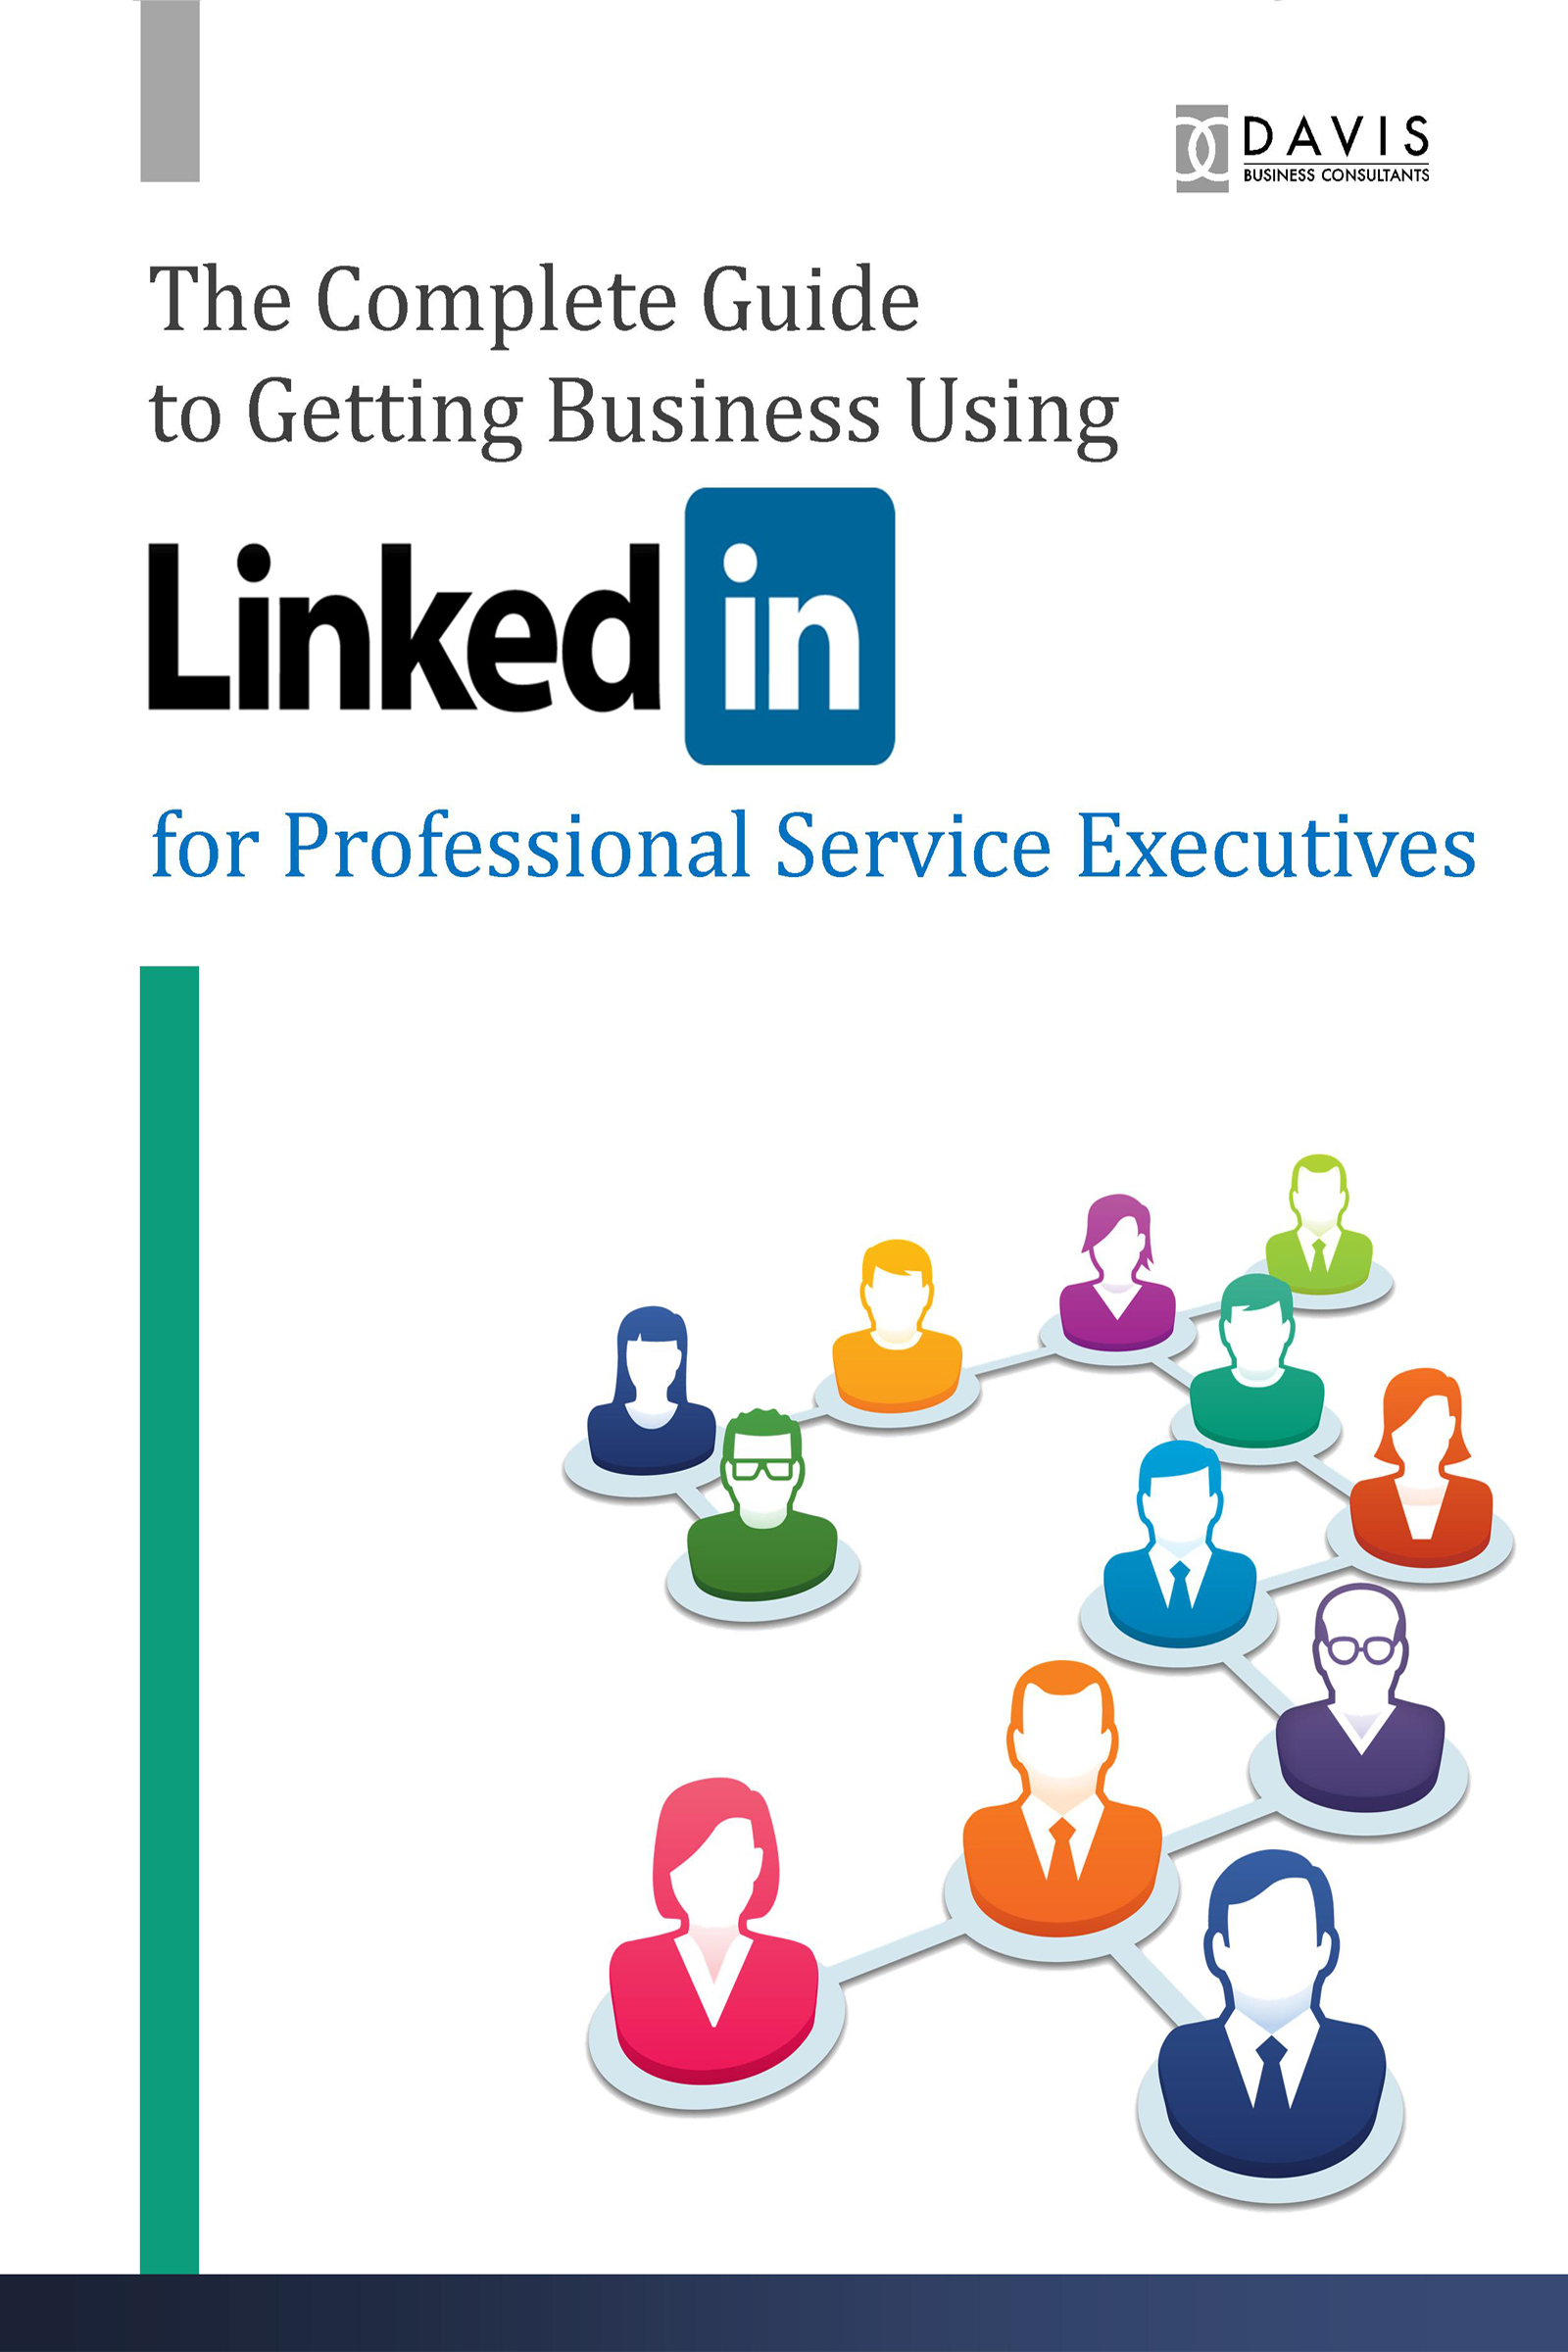 The Complete Guide to Getting Business Using LinkedIn